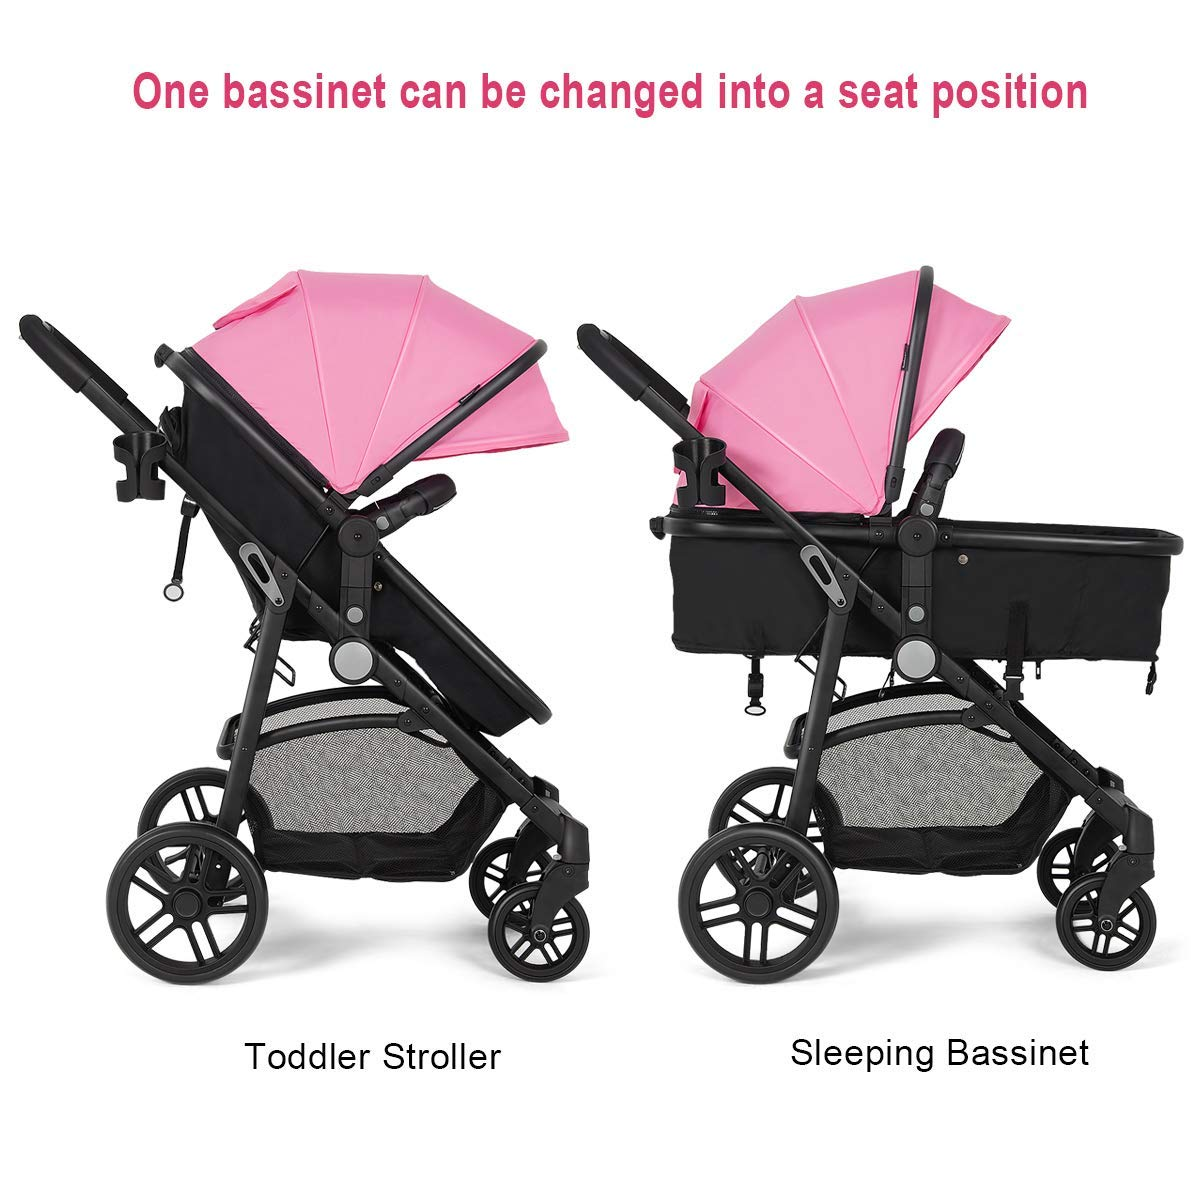 Costzon Baby Stroller, 2 in 1 Convertible Carriage Bassinet to Stroller, Pushchair with Foot Cover, Cup Holder, Large Storage Space, Wheels Suspension, 5-Point Harness (Pink Color) by Costzon (Image #6)